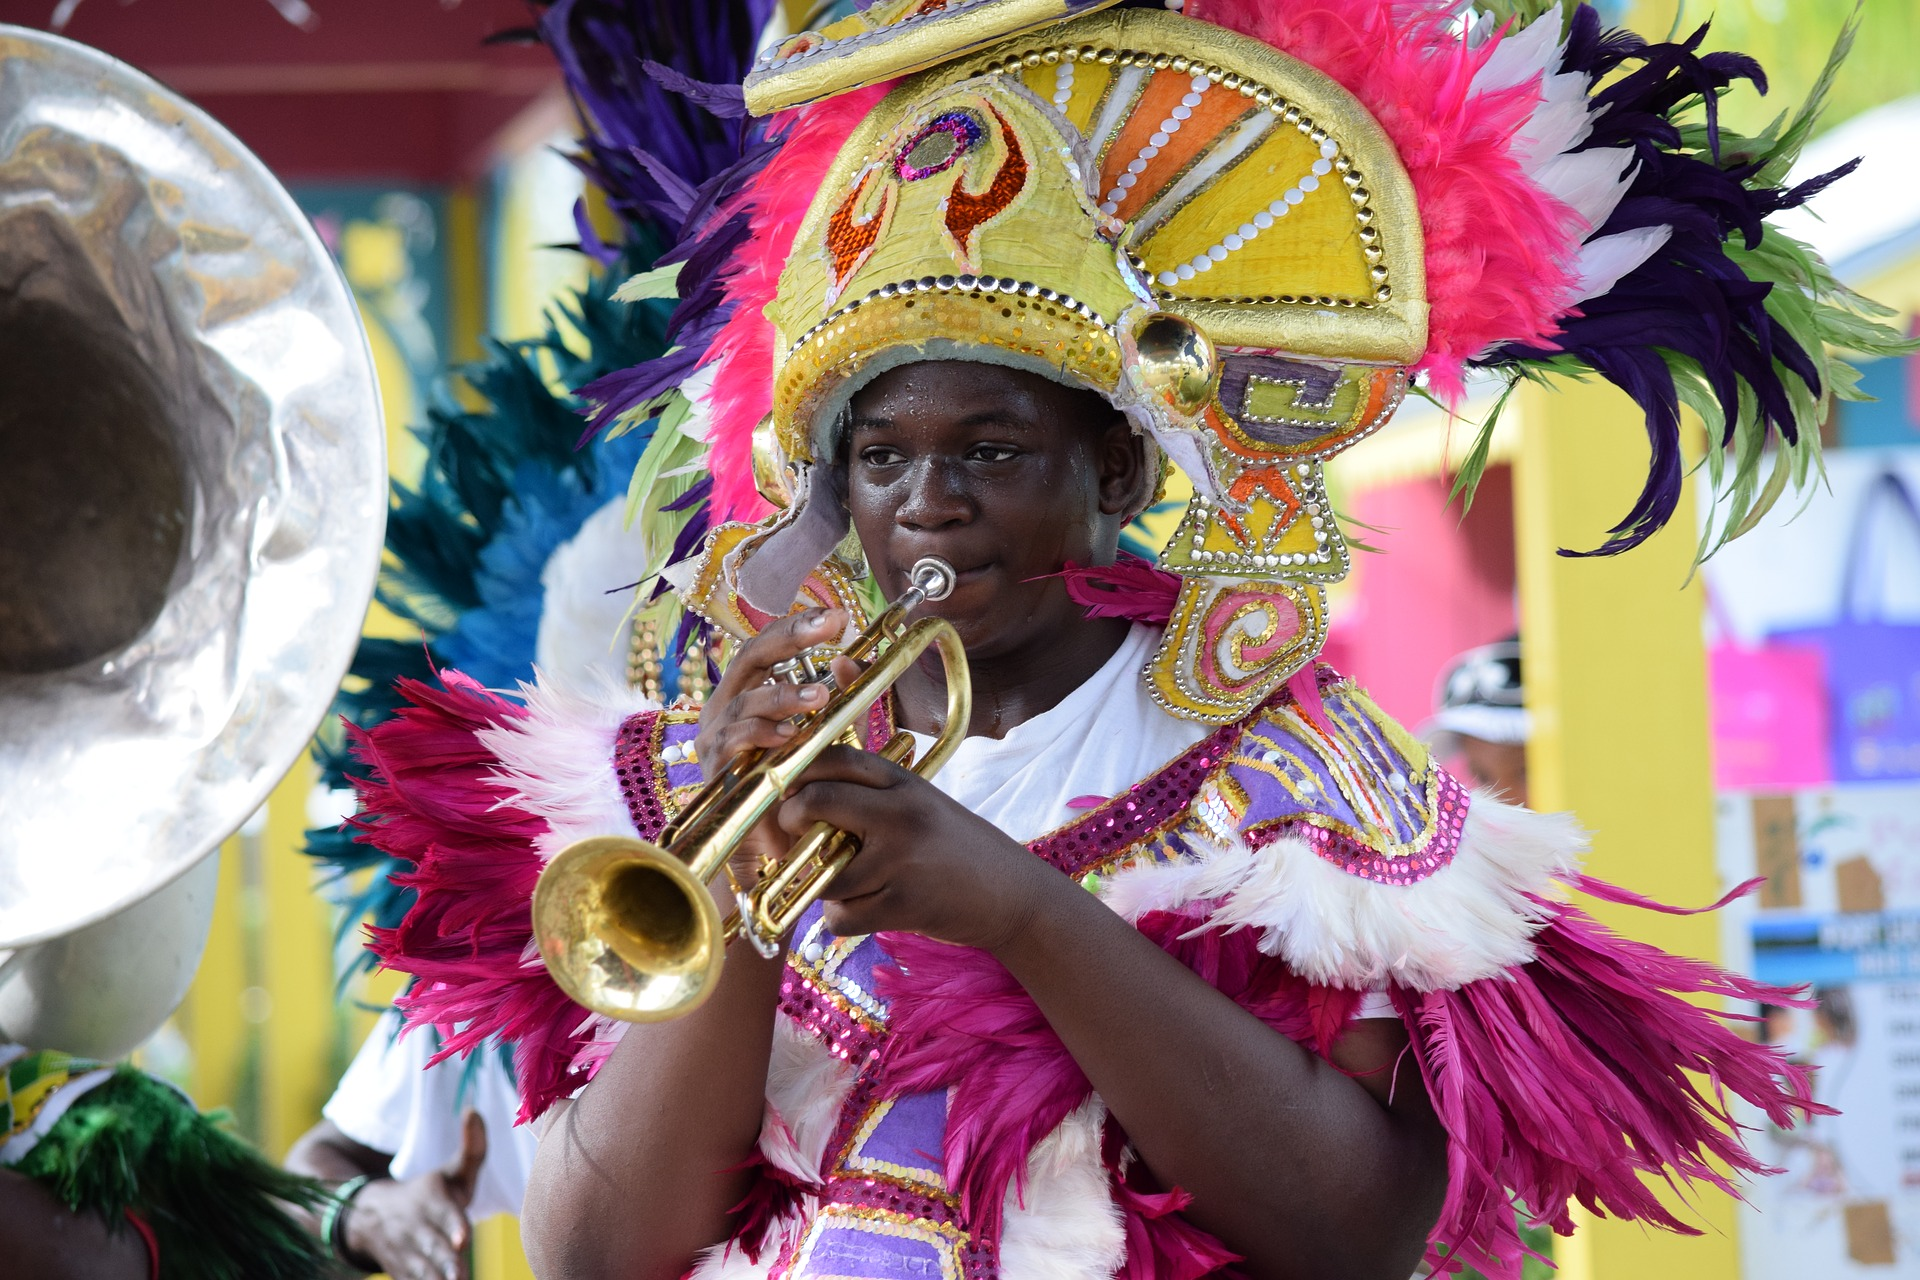 Bahamian woman in parade garb playing a trumpet